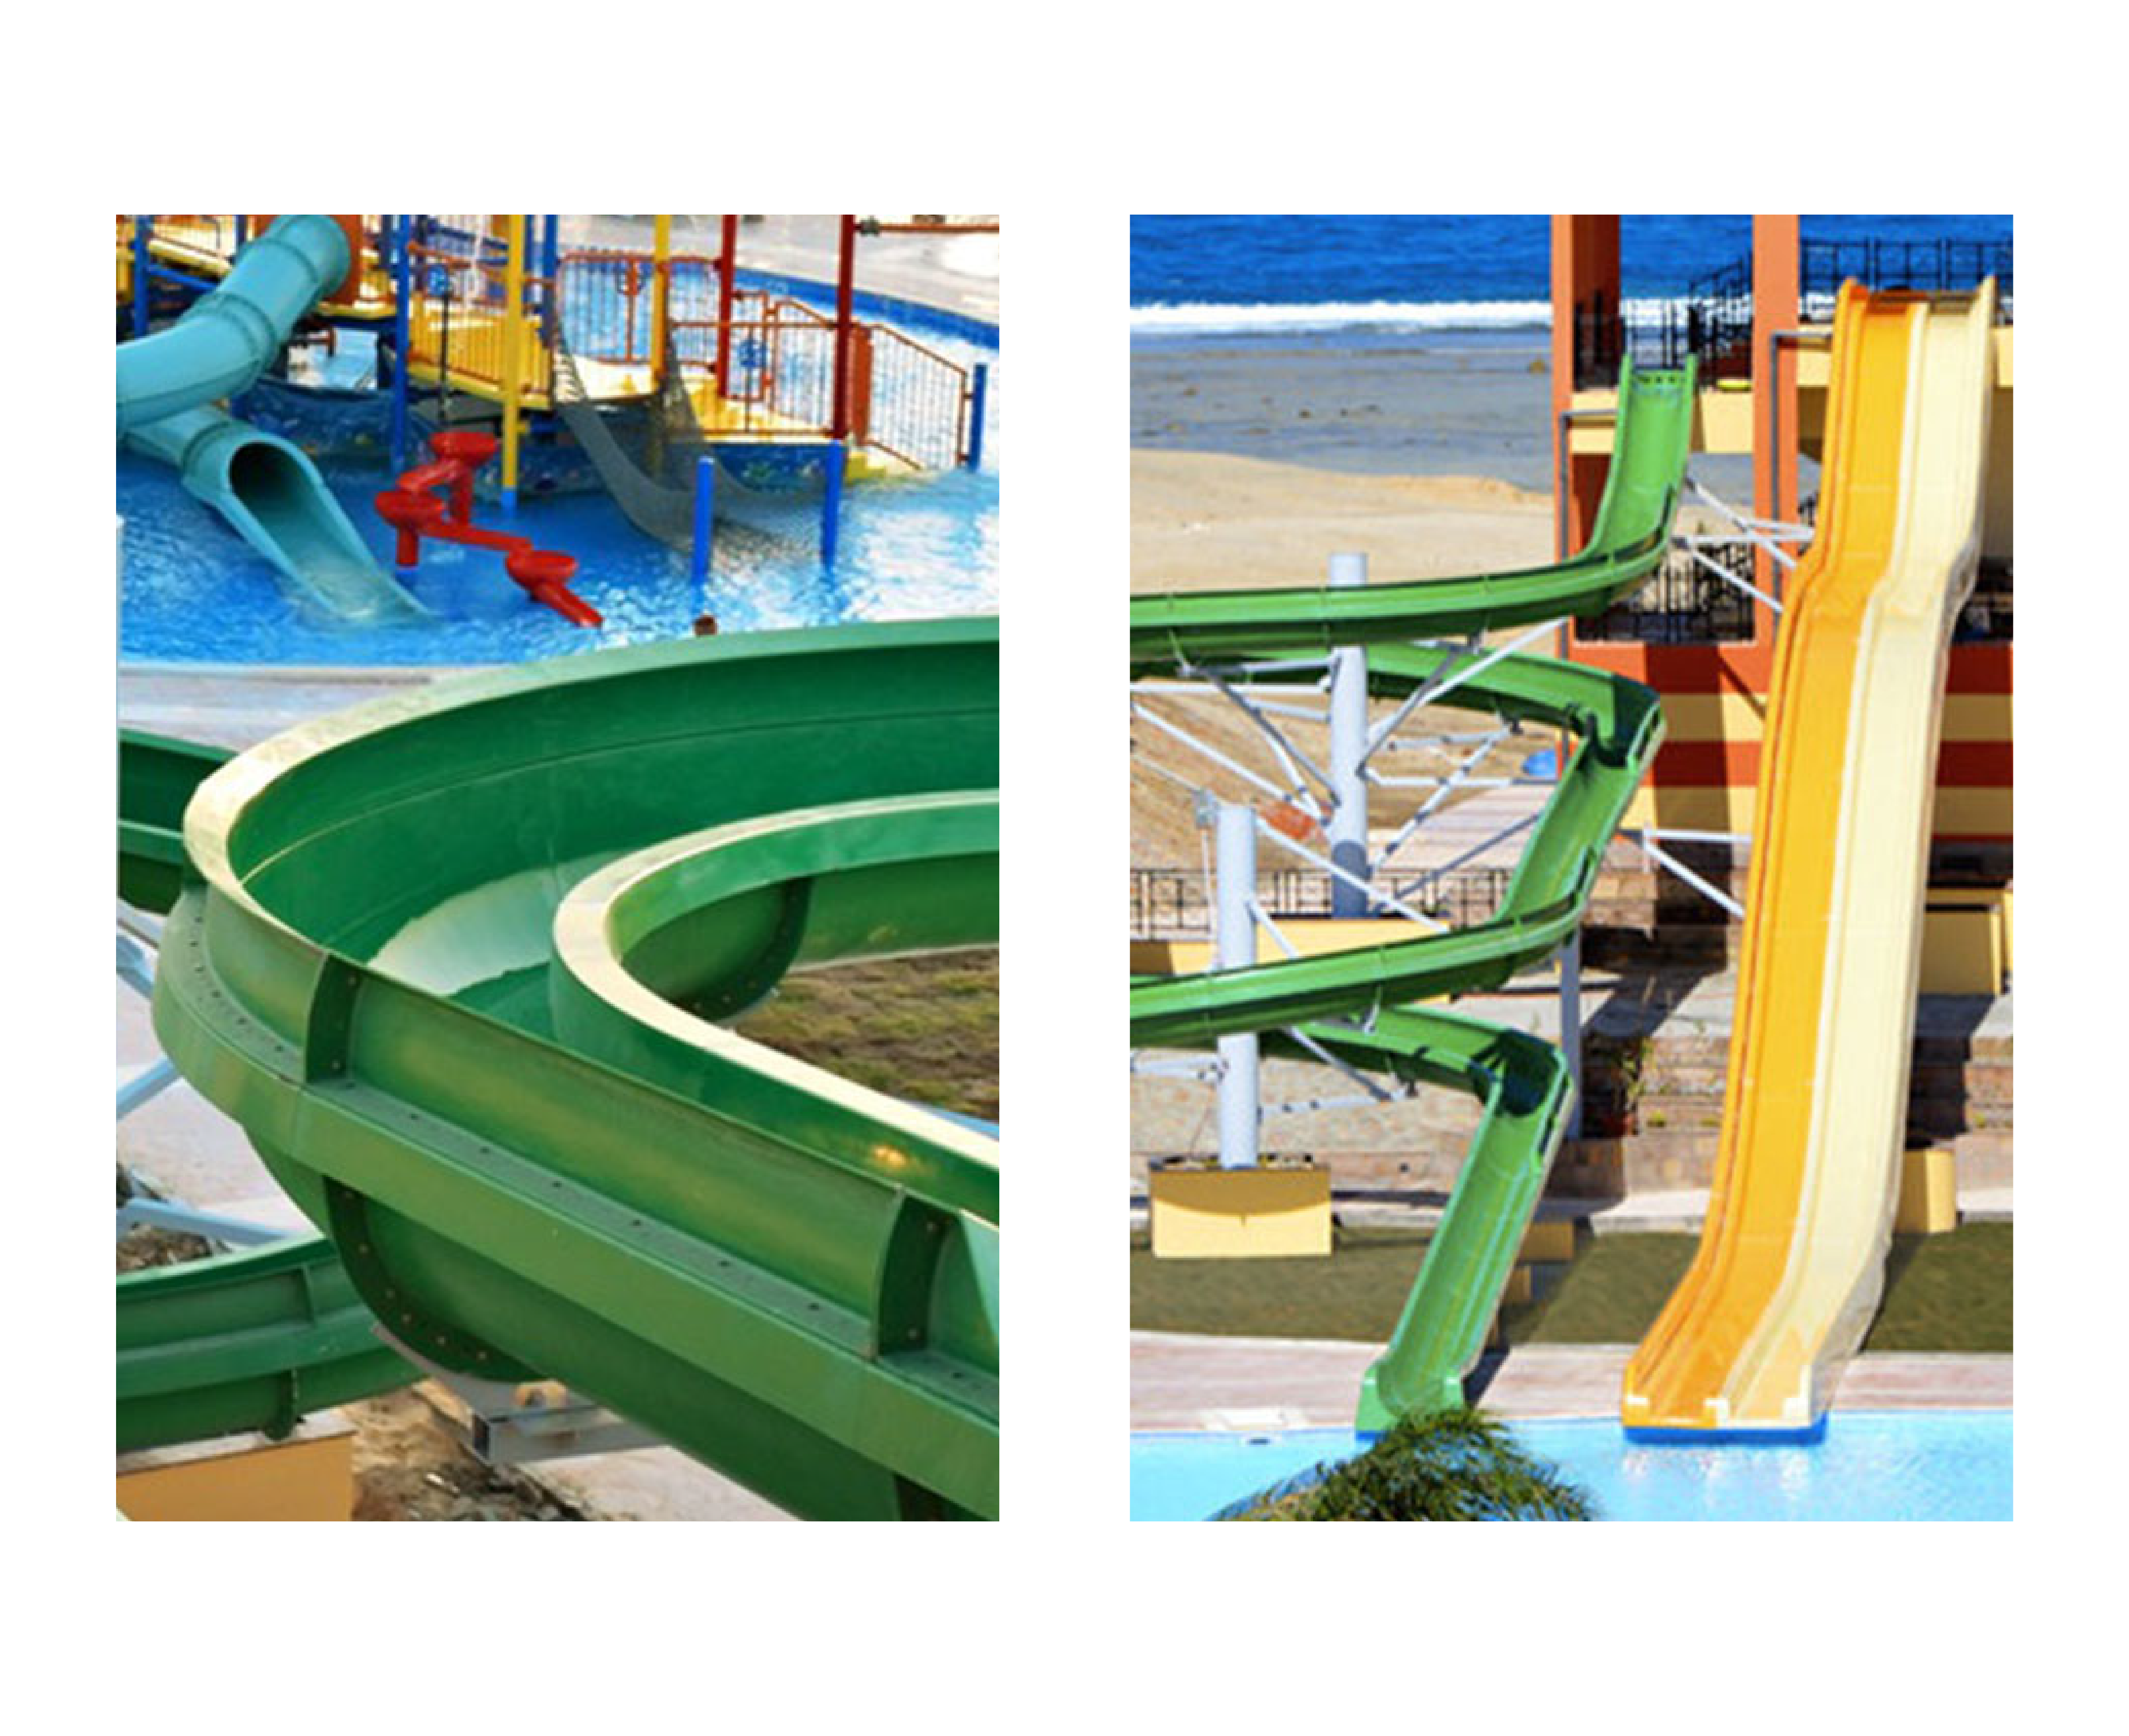 Water slides of the hotel